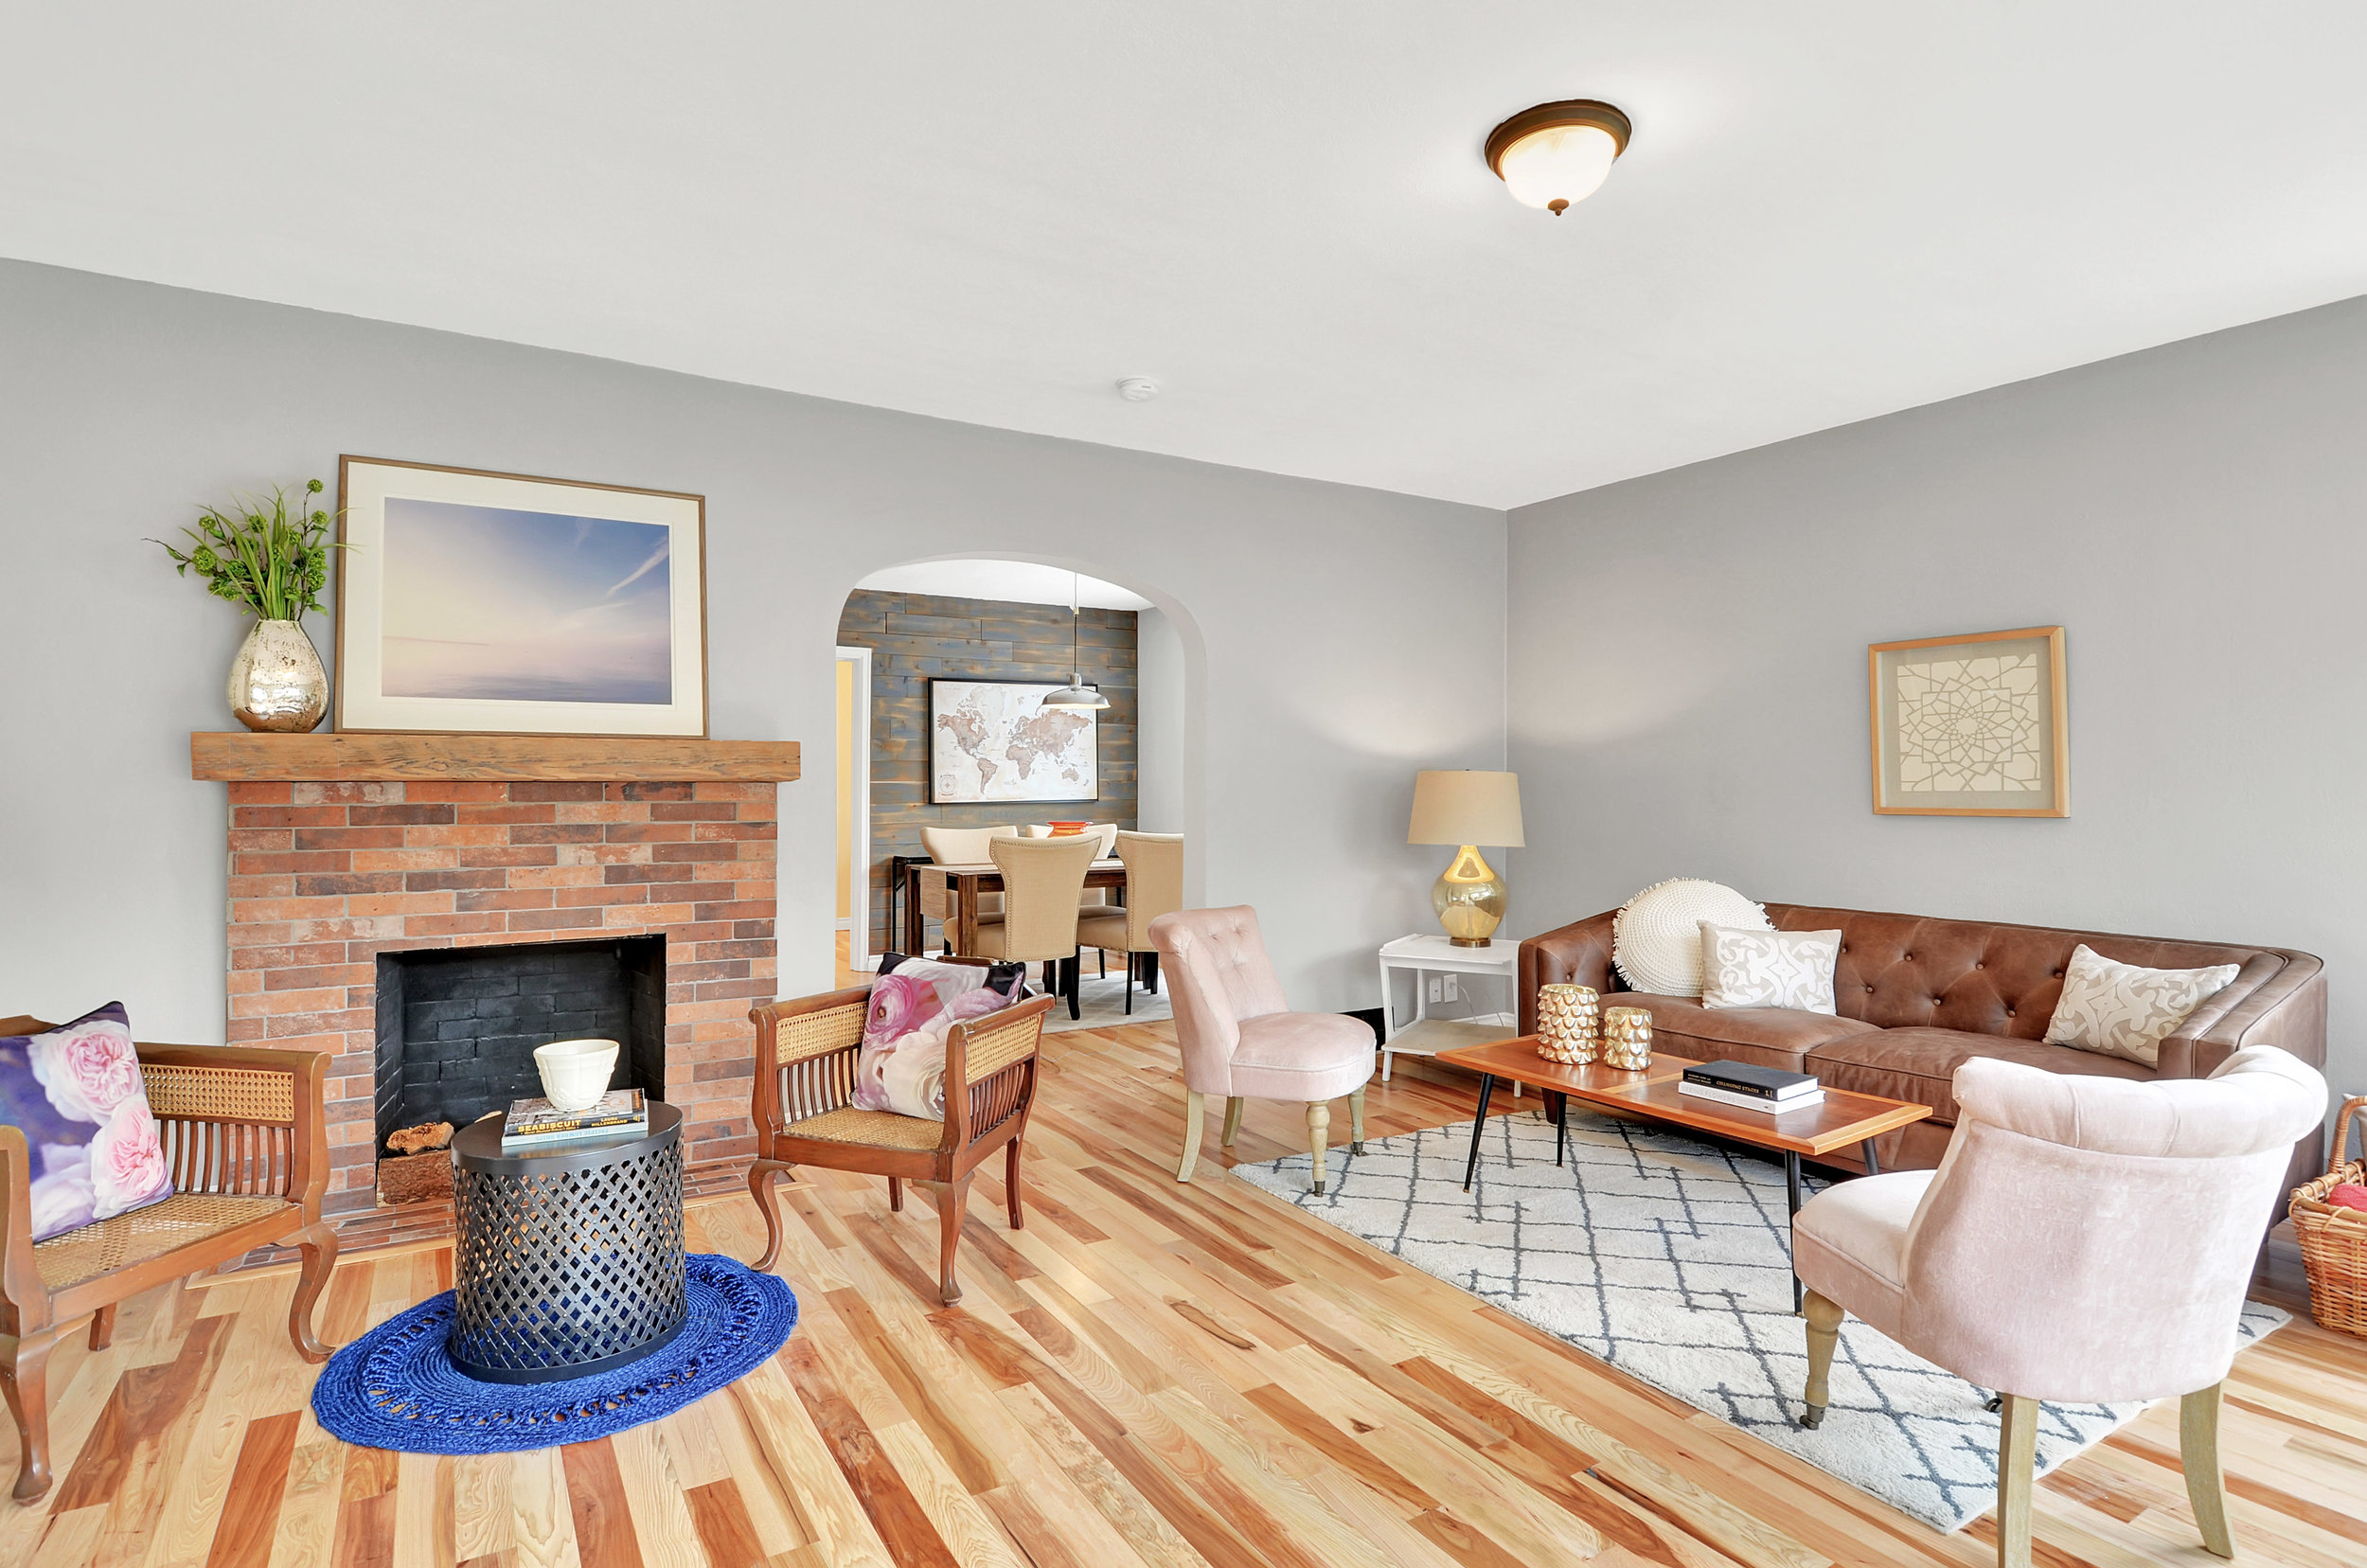 The living room features a fireplace with a brick hearth and solid mantle, and an attractive archway into the dining room.